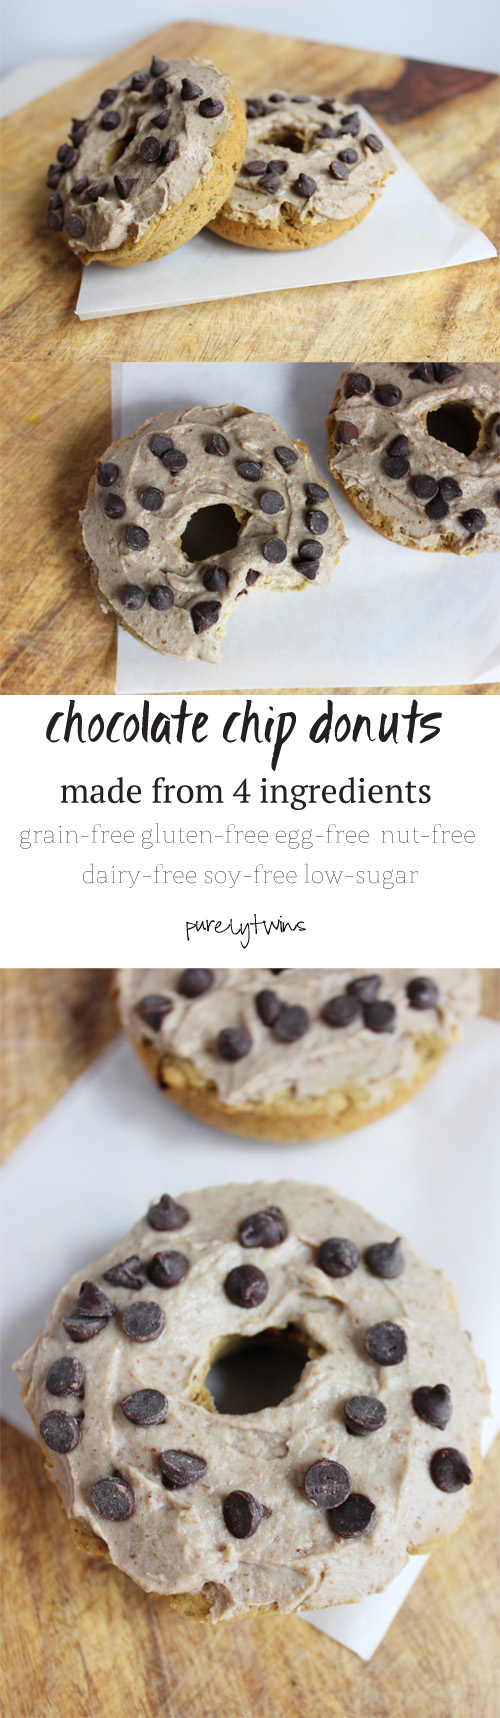 how to make healthy 4 ingredient protein packed chocolate chip donuts for two! || purleytwins.com #grainfree #donuts #vegan